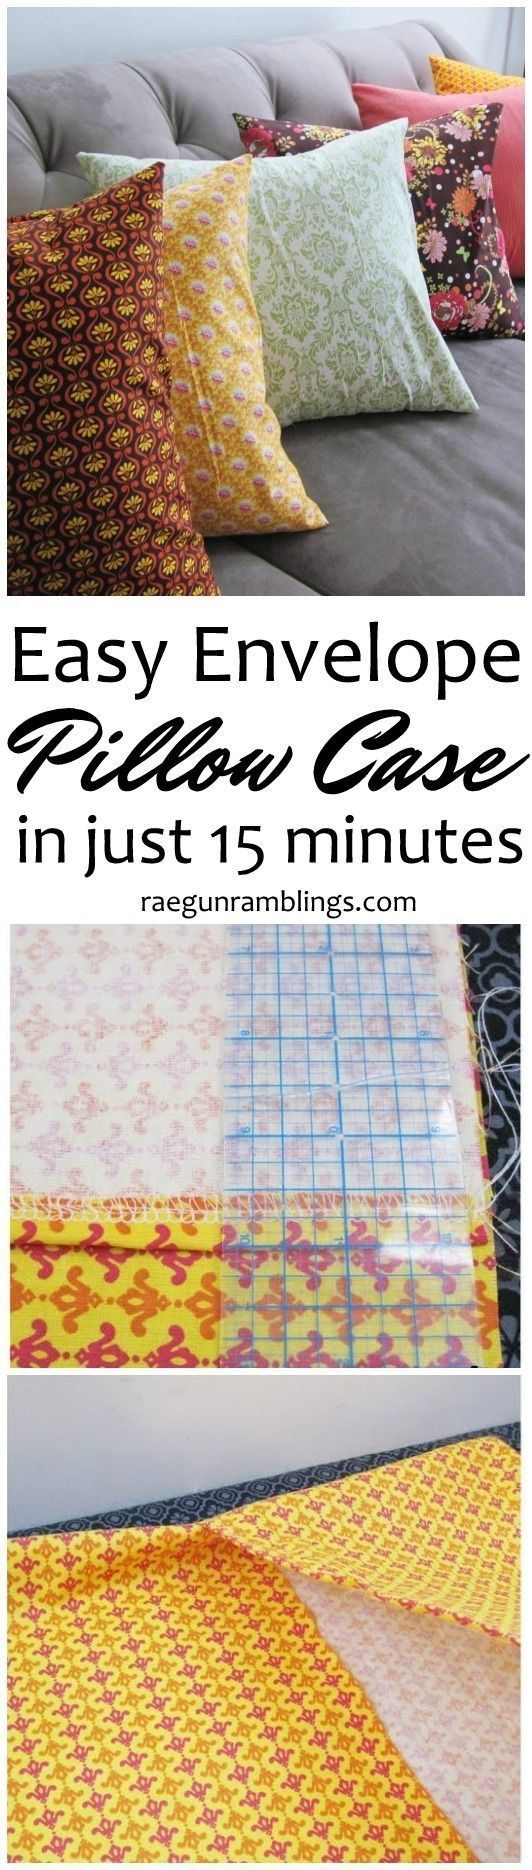 Great DIY sewing tutorial I've already made a few of these envelop pillow cases! Easy to customize for any home decor.: